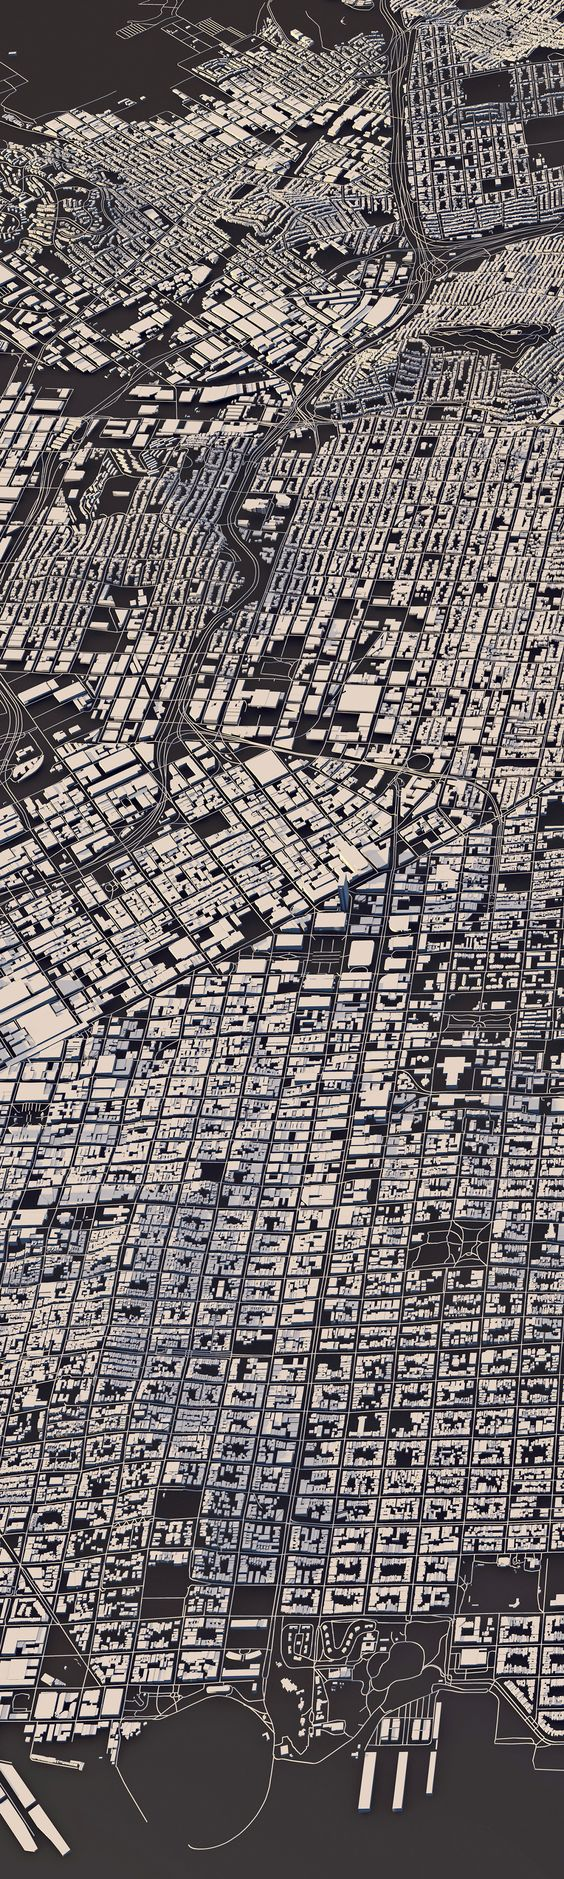 Luis Dilger - City Layouts combining topography and 3D rendering from OpenStreetMap data.